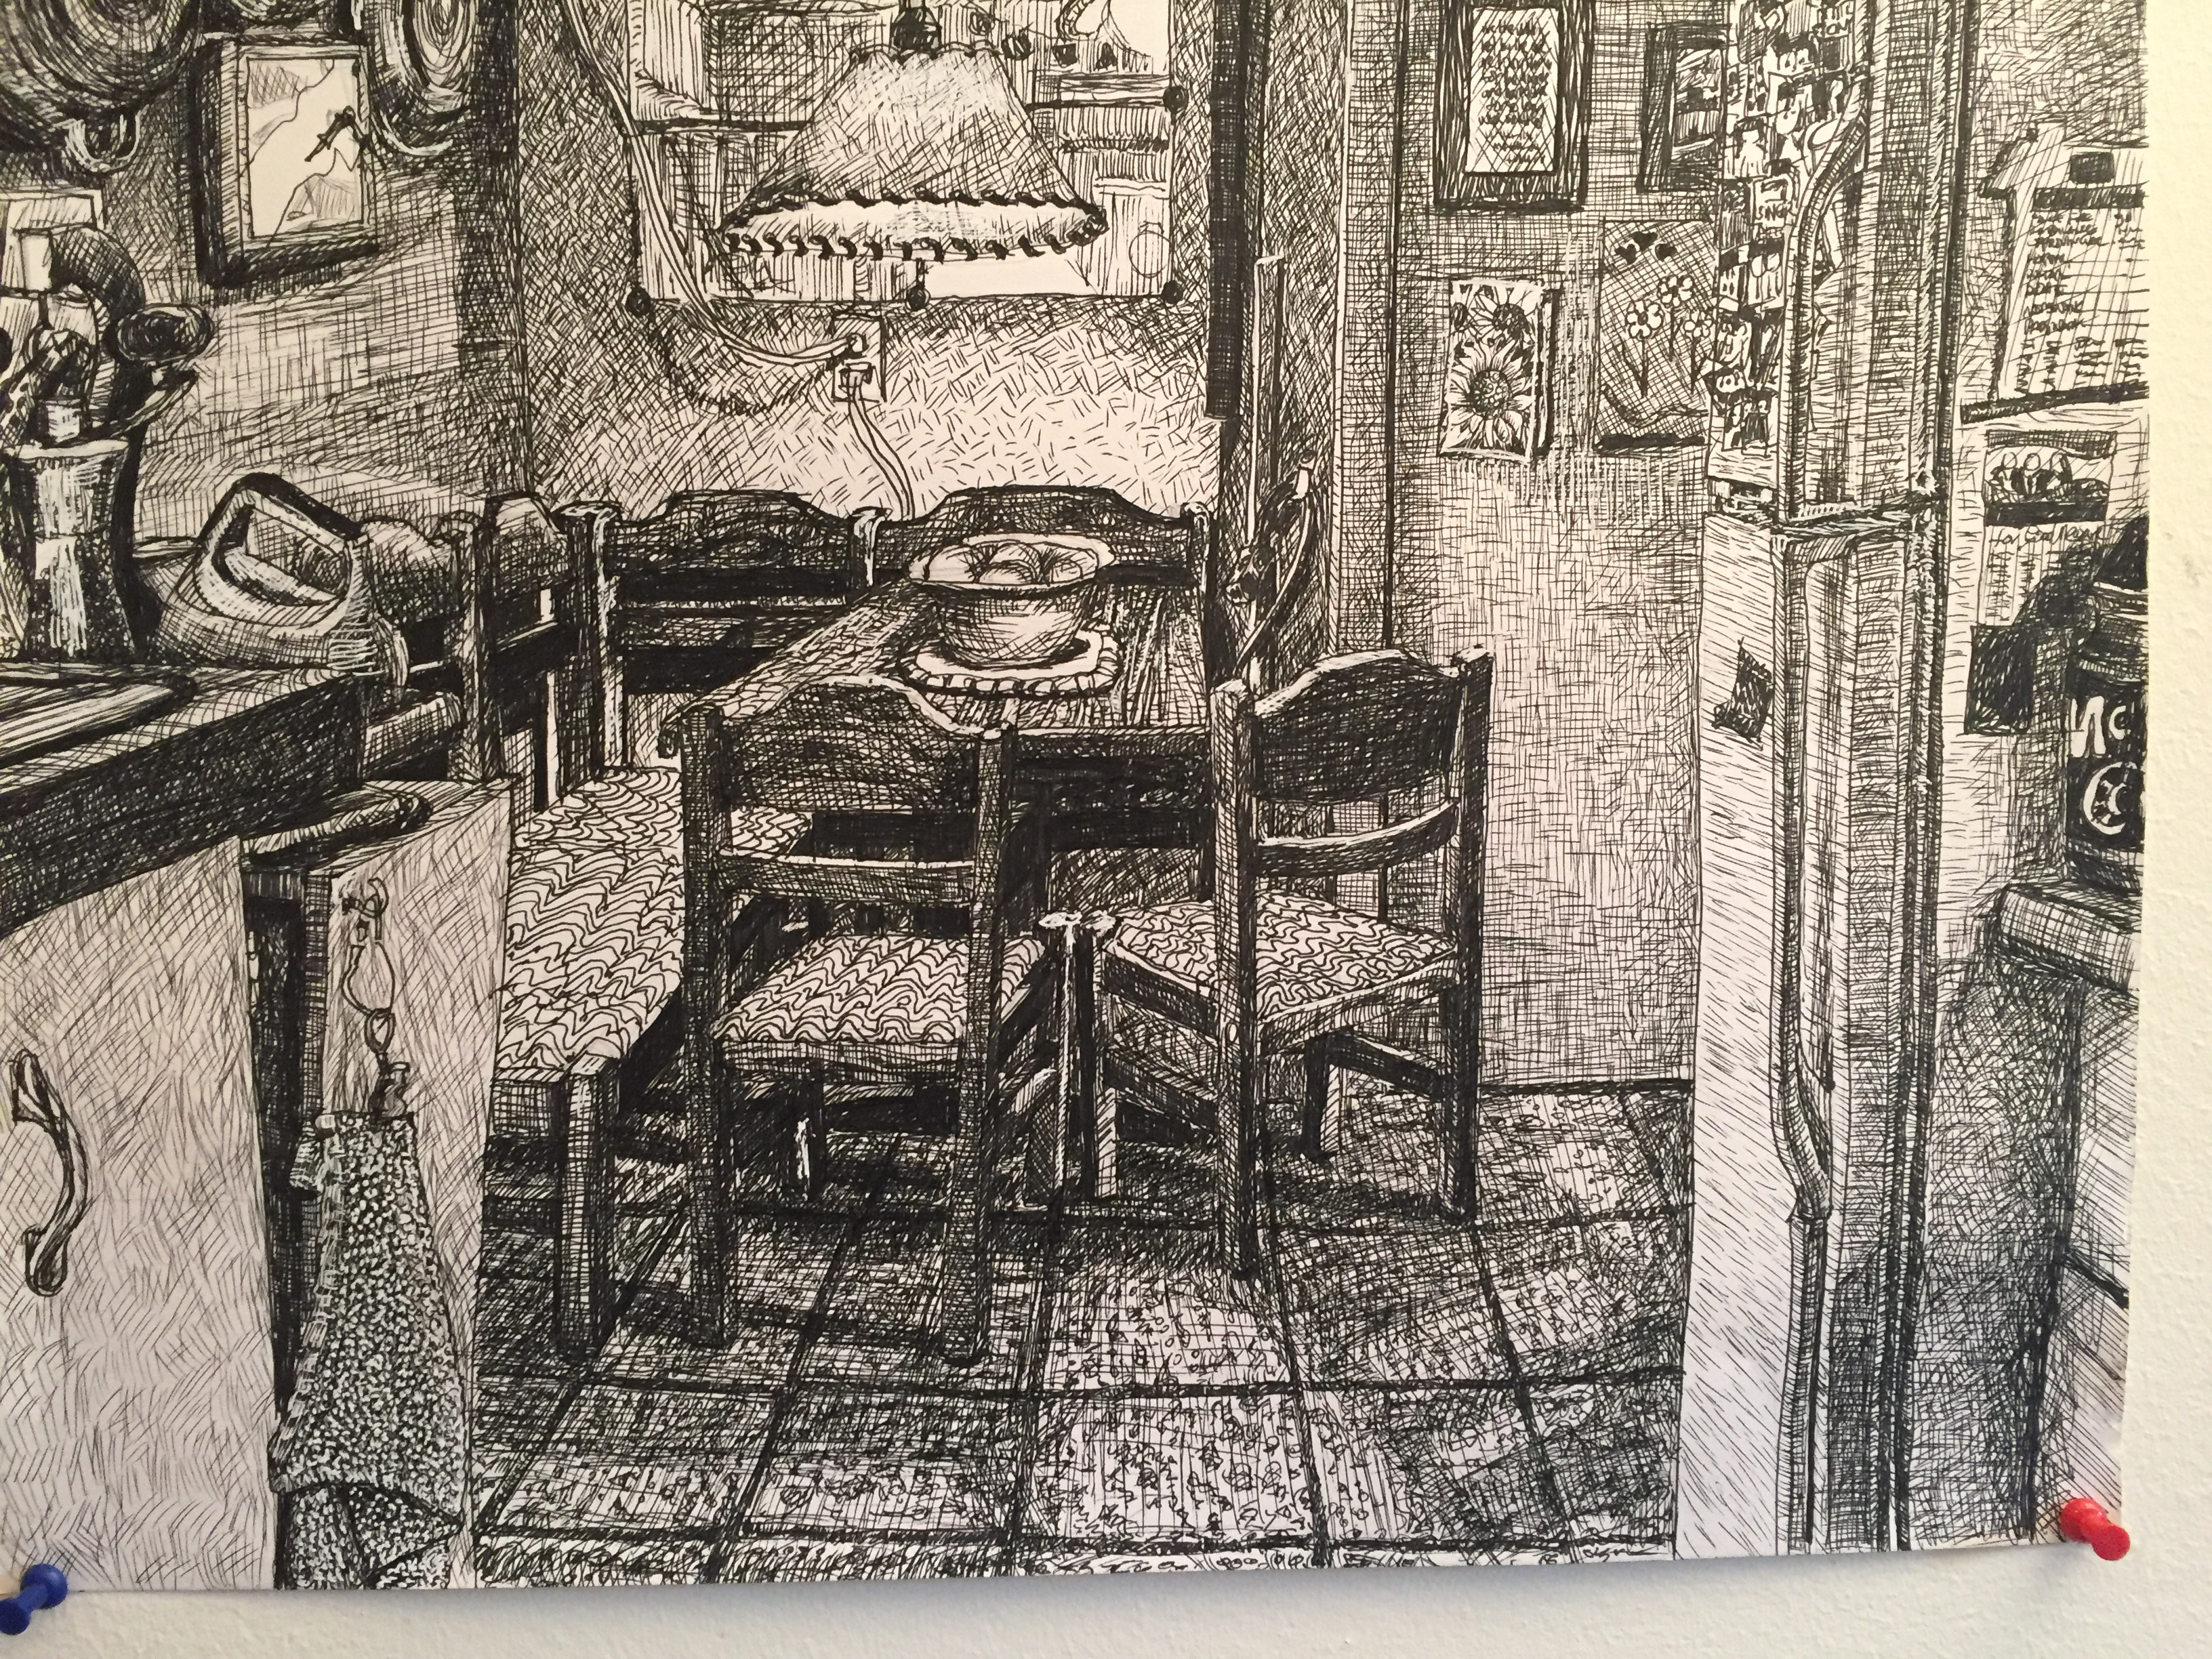 the-kitchen-nook---2235-manchester-drive-by-cork-ireland-freelance-artist---art-van-leeuwen